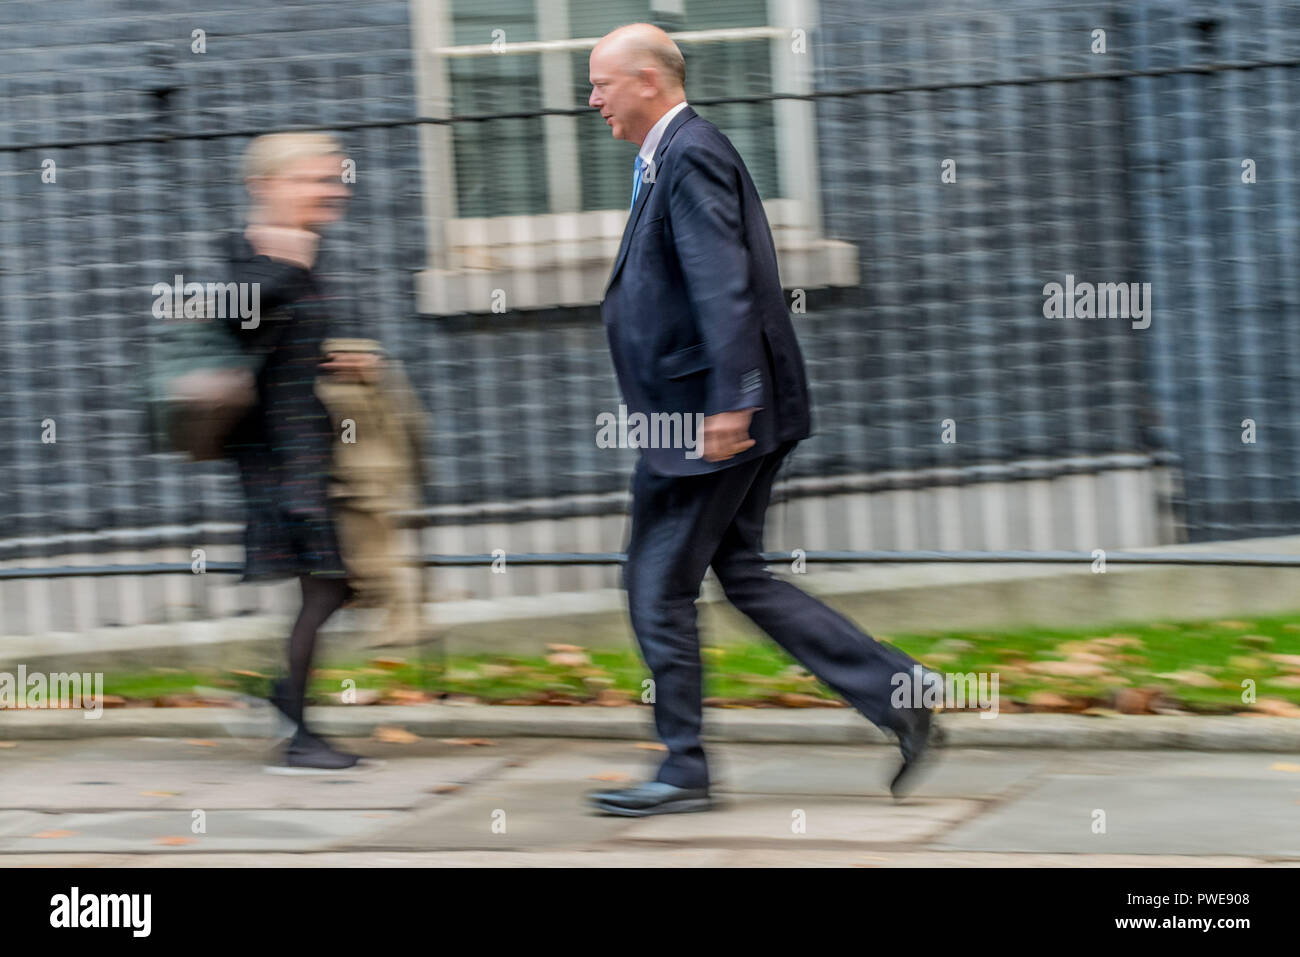 October 16, 2018 - Chris Grayling,Secretary of State for Transport  arriving at weekly Cabinet meeting at Downing Street (Credit Image: © Velar Grant/ZUMA Wire) - Stock Image